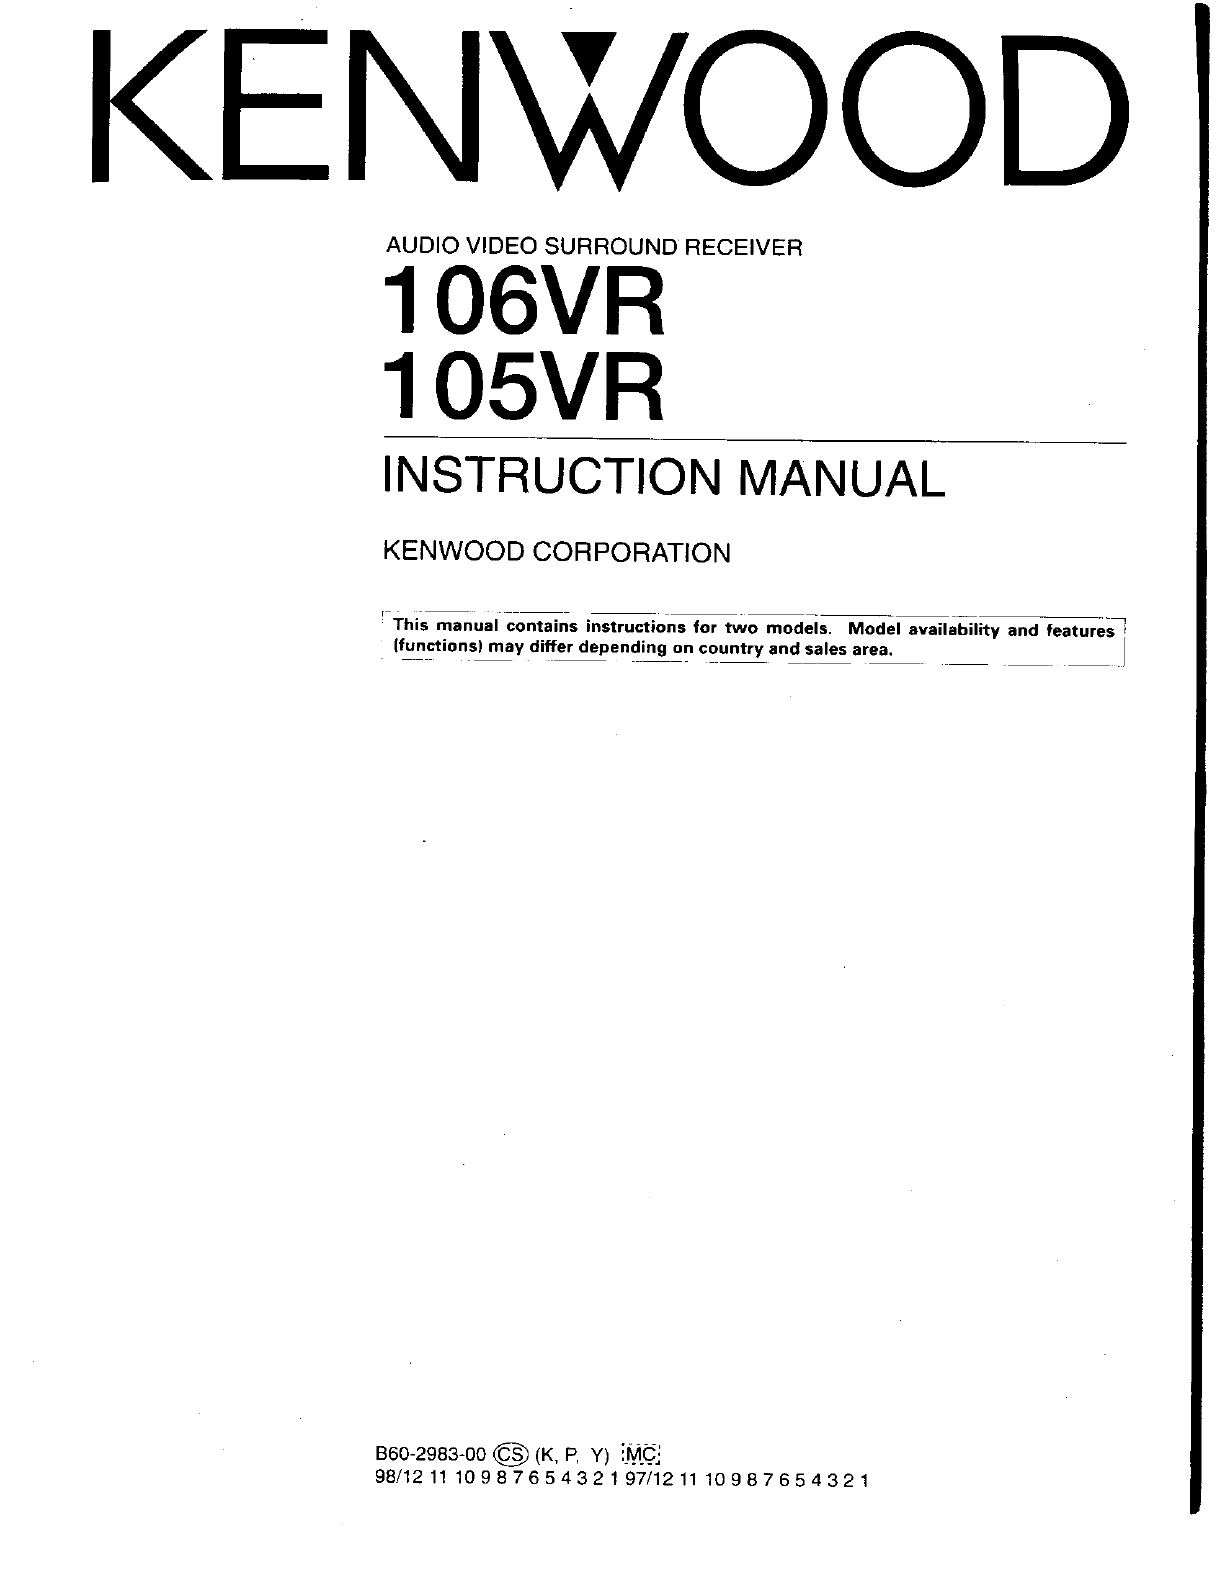 kenwood stereo receiver 105vr user guide manualsonline com rh audio manualsonline com KDC-252U Kenwood User Manuals free kenwood user manual download